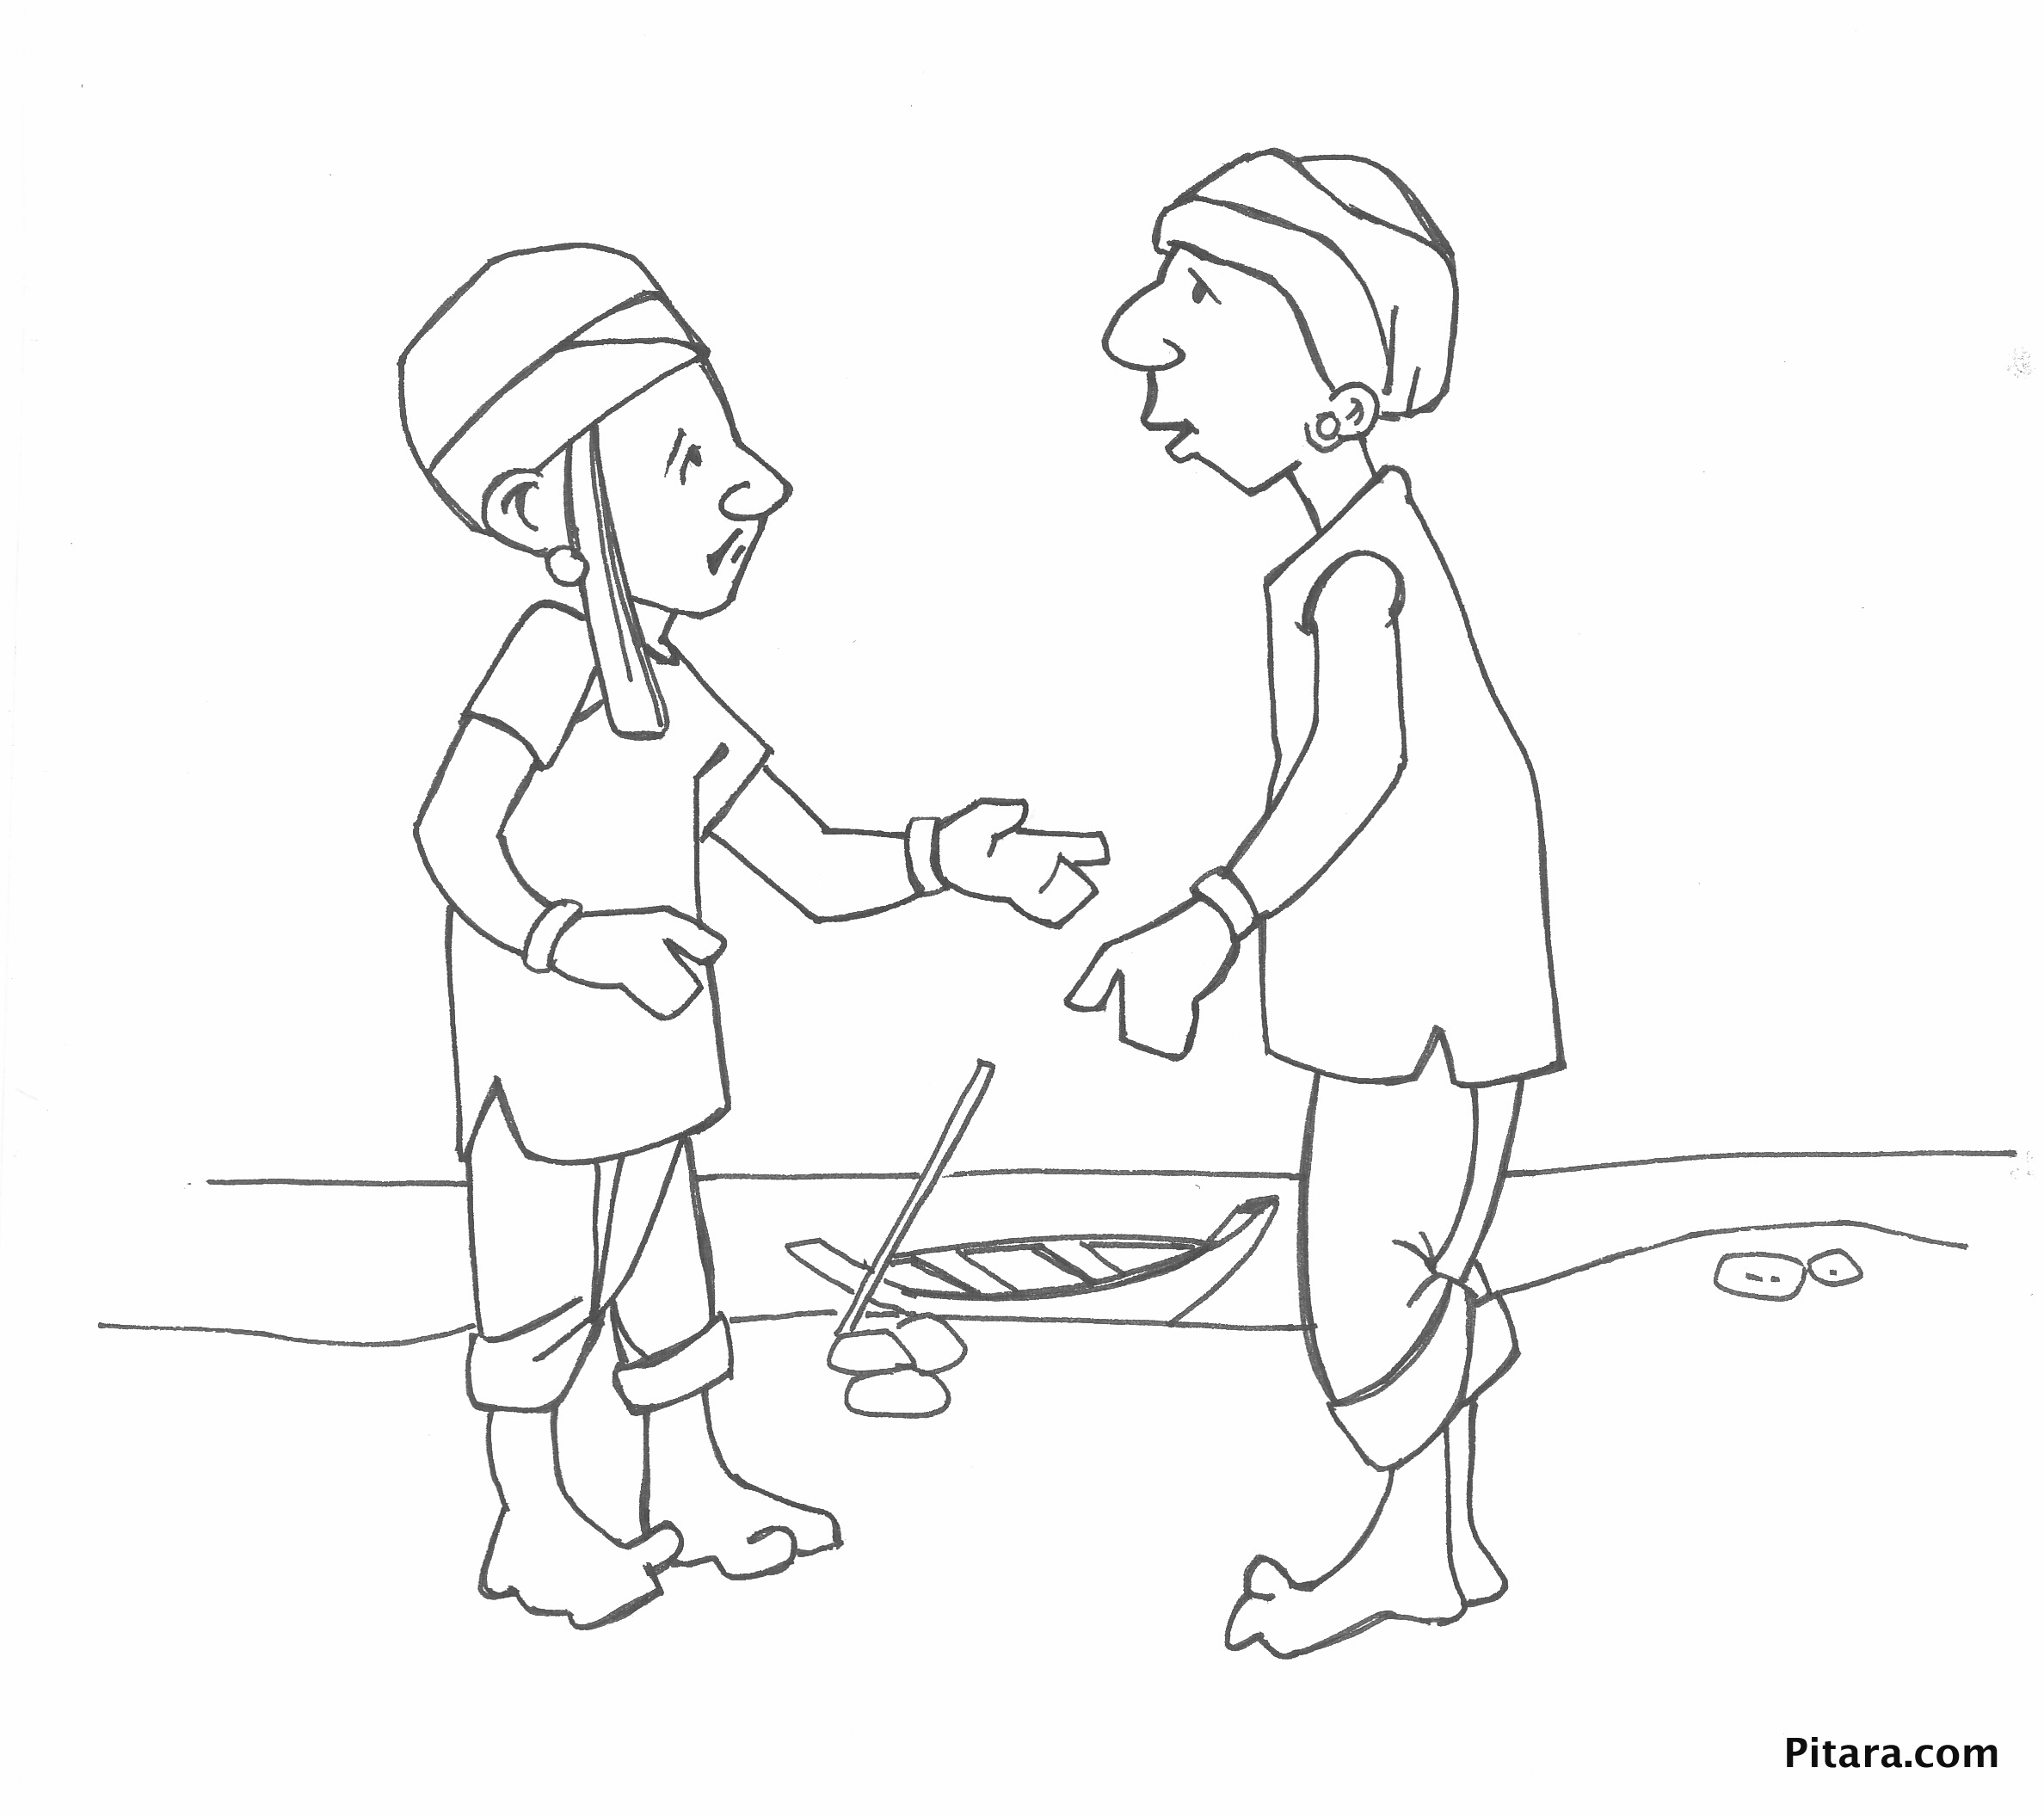 2376x2112 Indian Village People Coloring Pages Pitara Kids Network